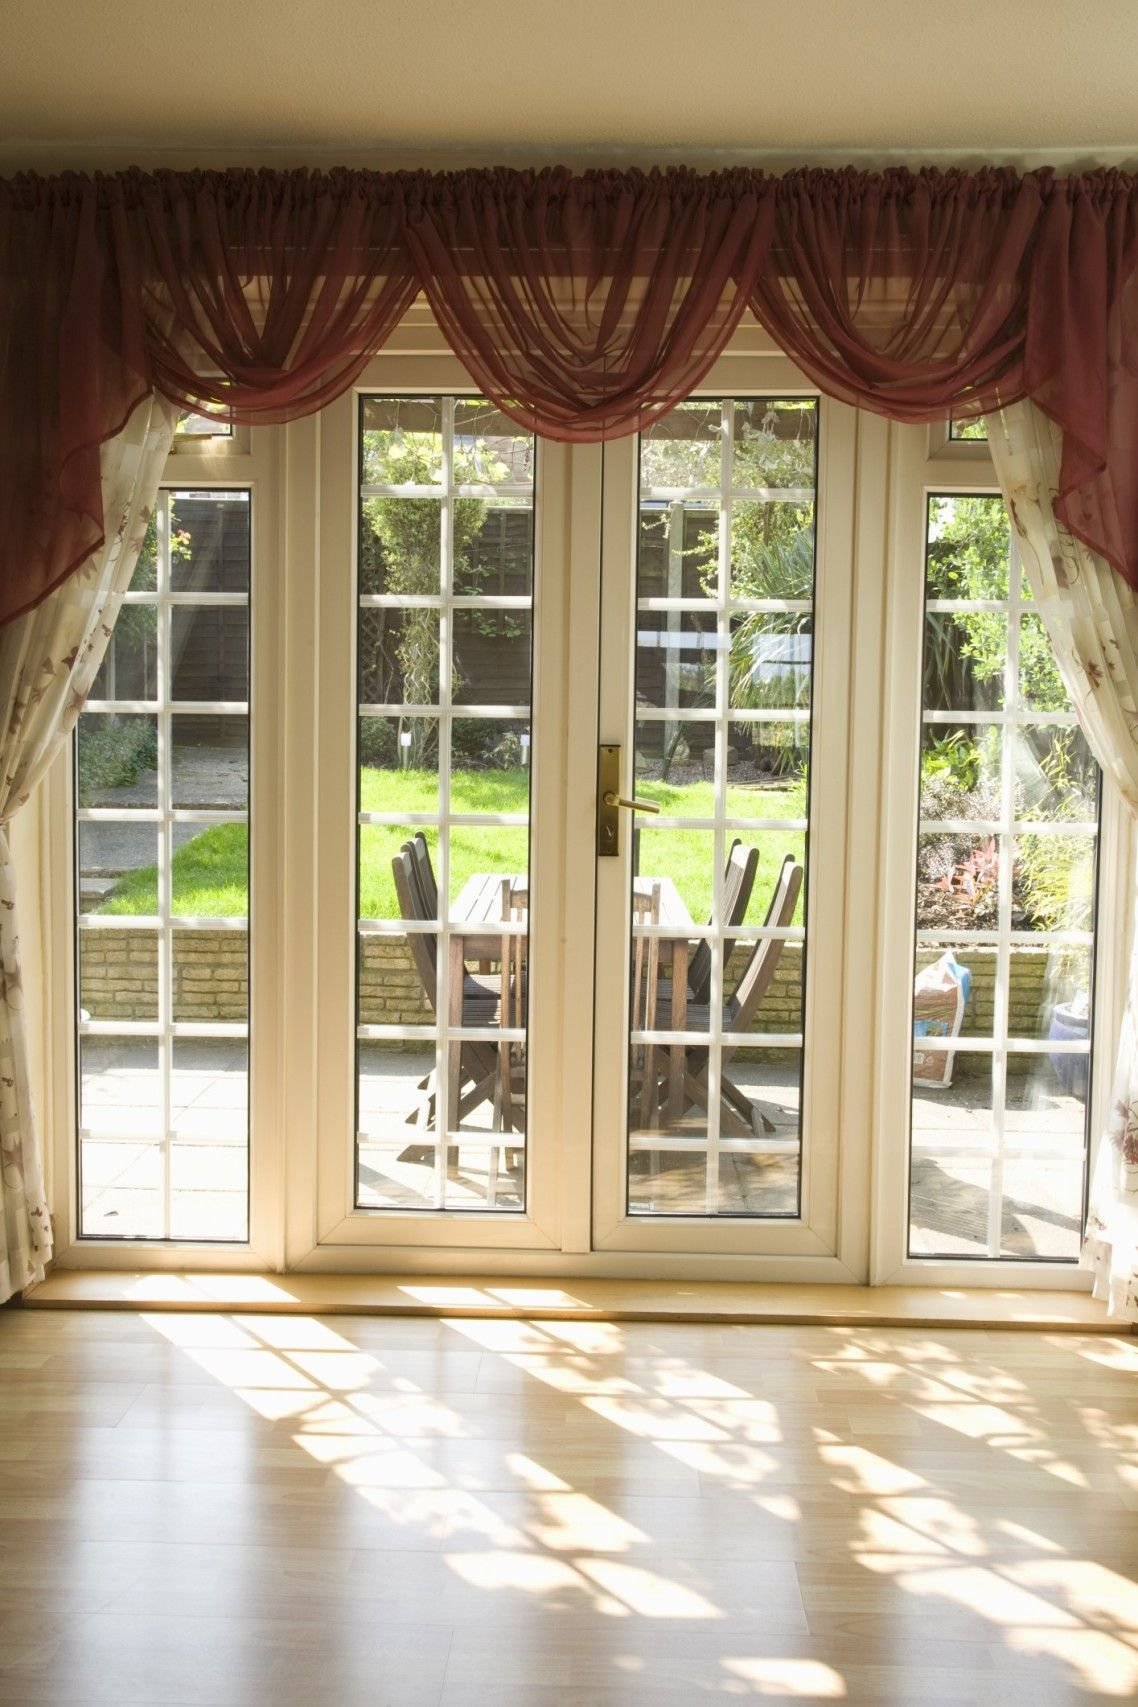 Open the curtains in french curtain menzilperde net for French door style patio doors